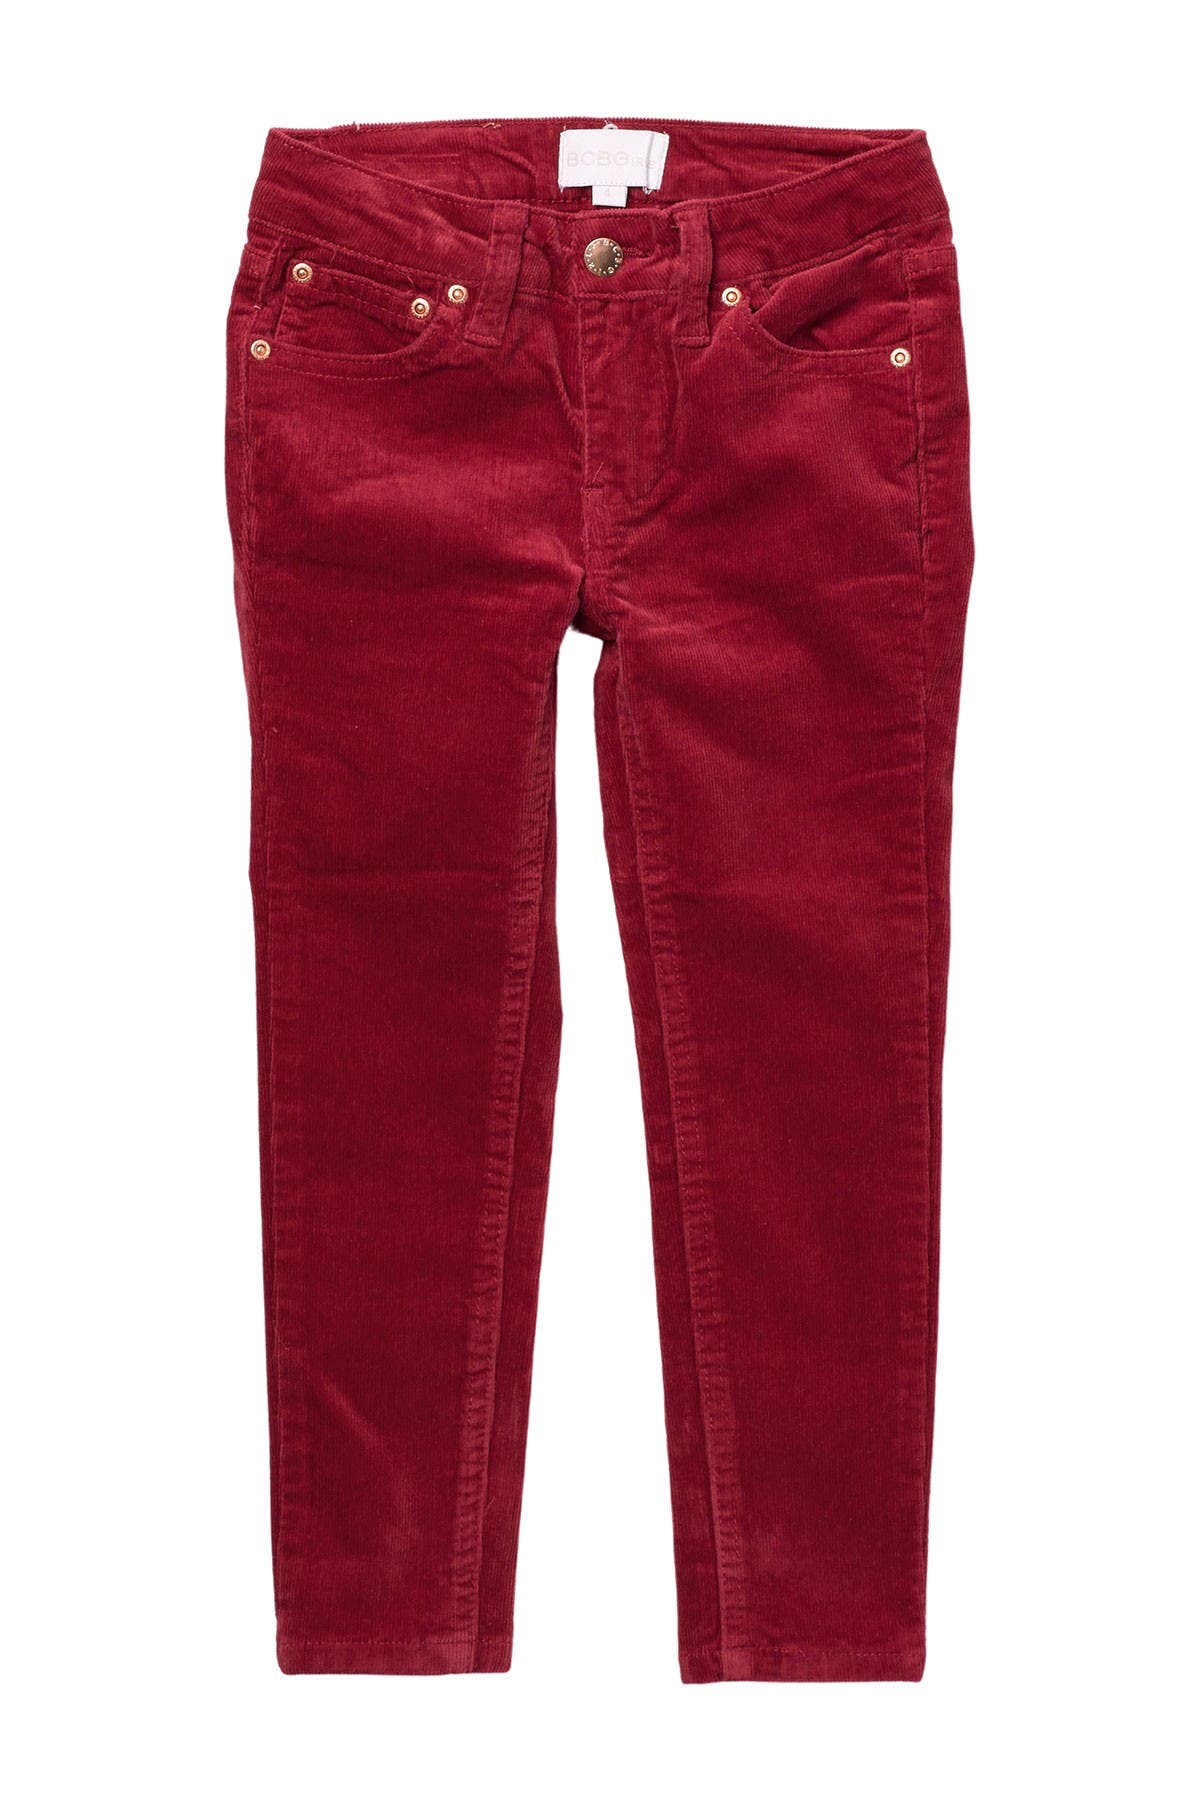 Image of BCBGirls Corduroy Pants